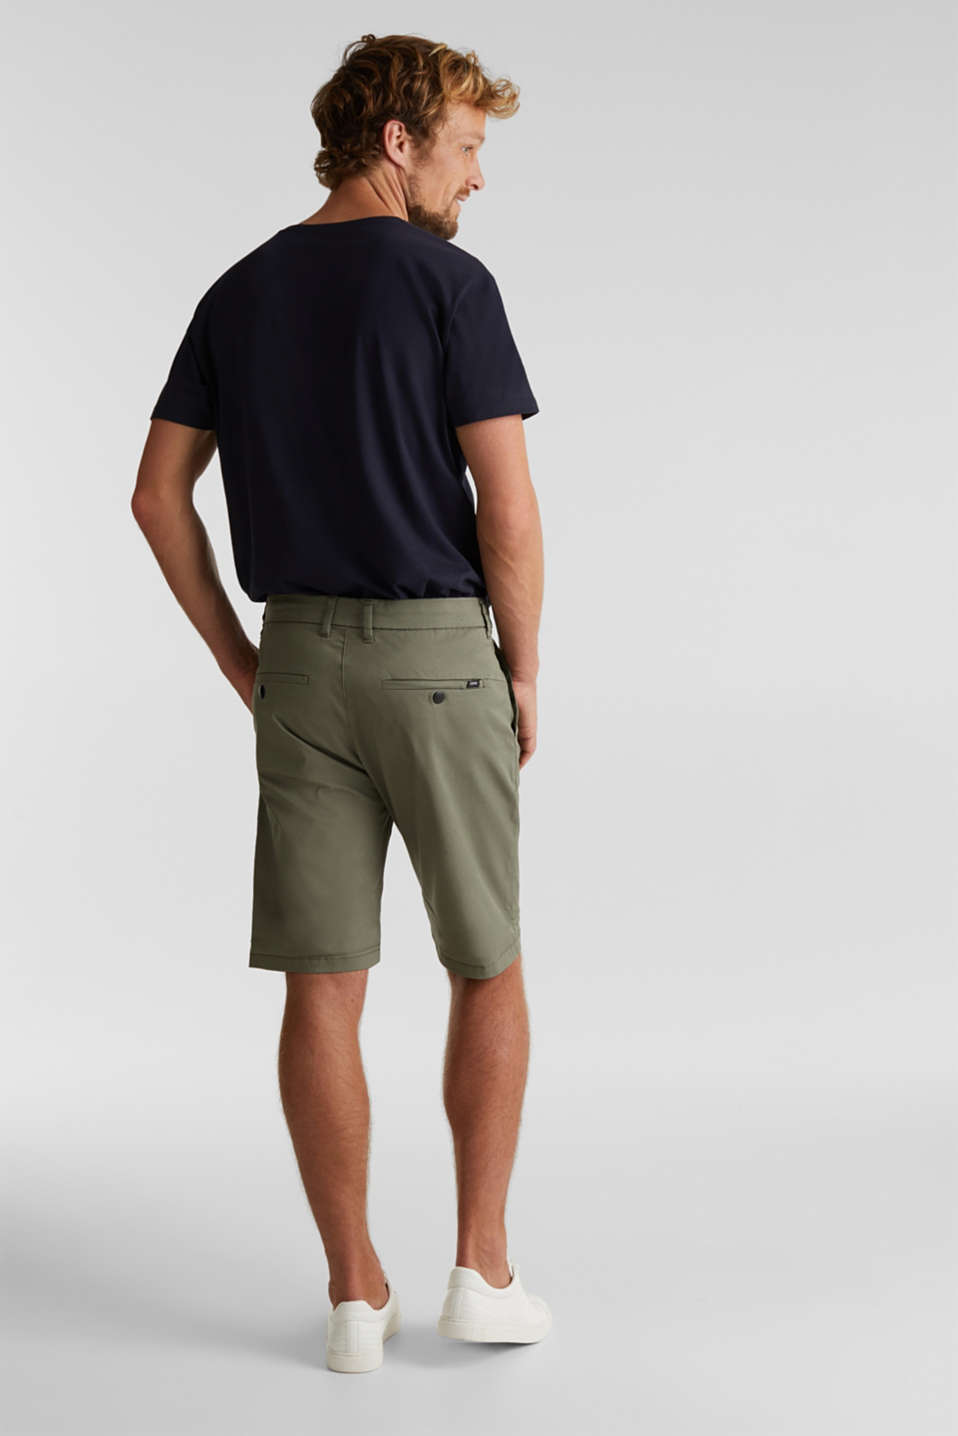 Shorts with COOLMAX®, organic cotton, LIGHT KHAKI, detail image number 3